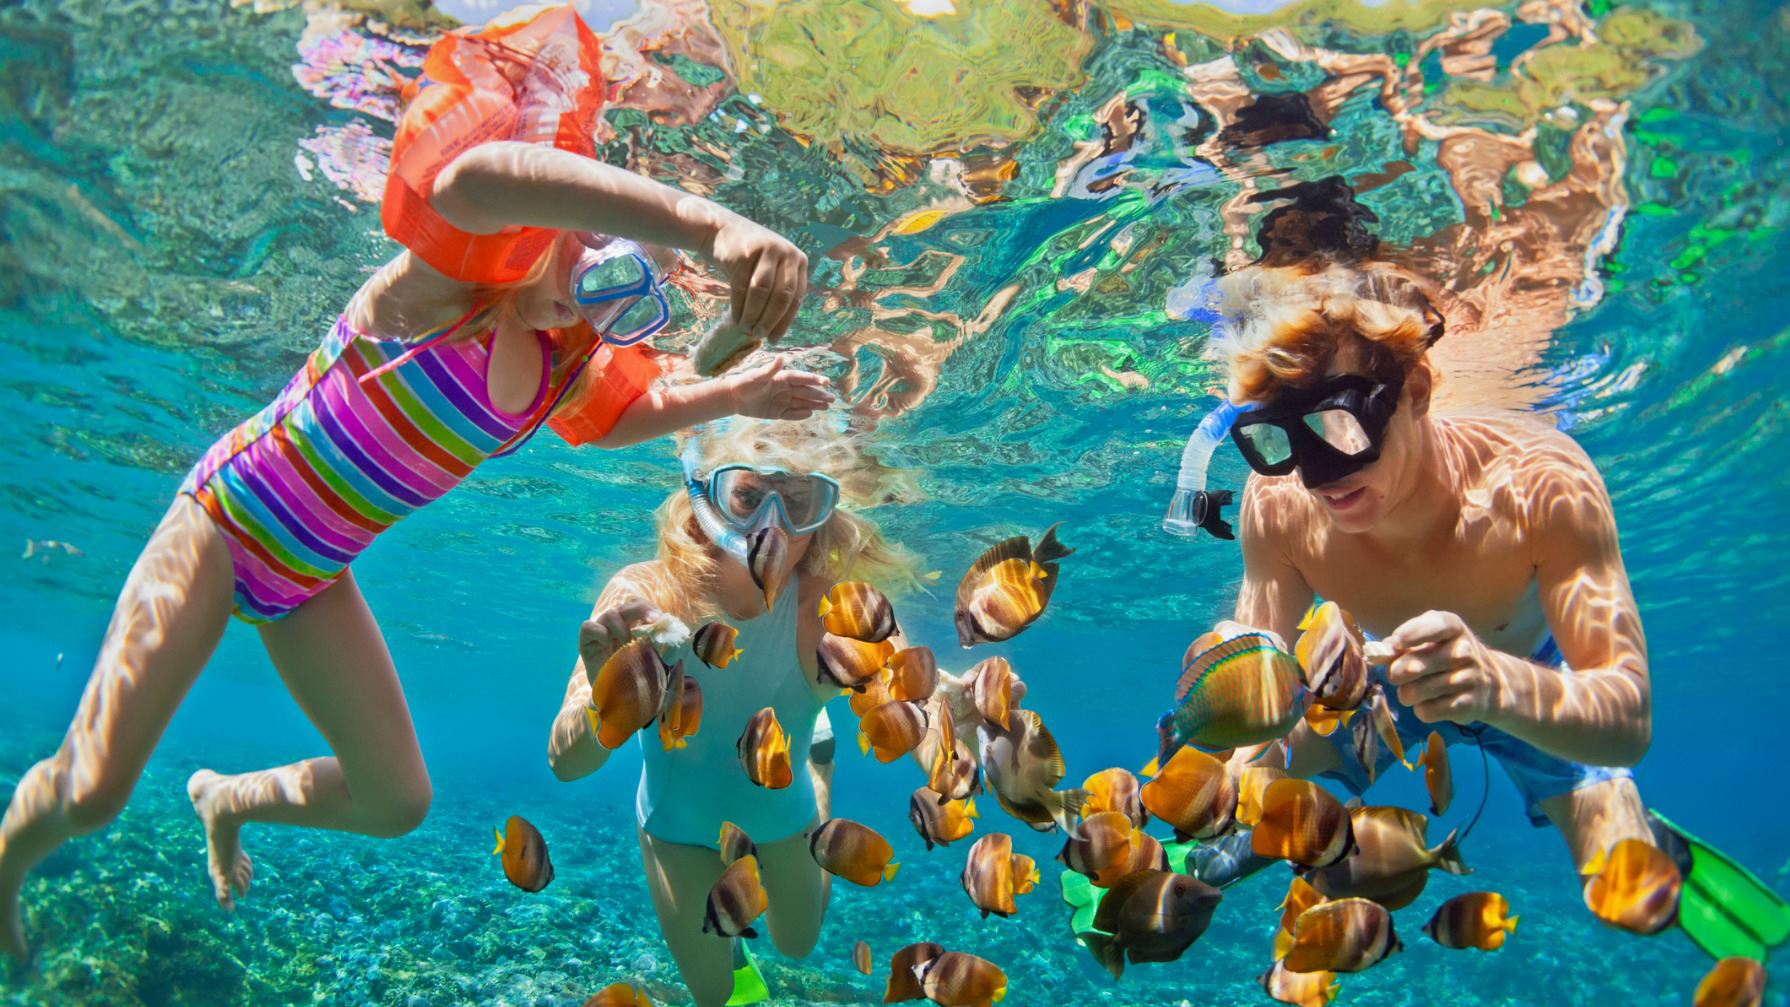 Paradise Island Snorkeling Tours from El-Gouna - Tours from El Gouna